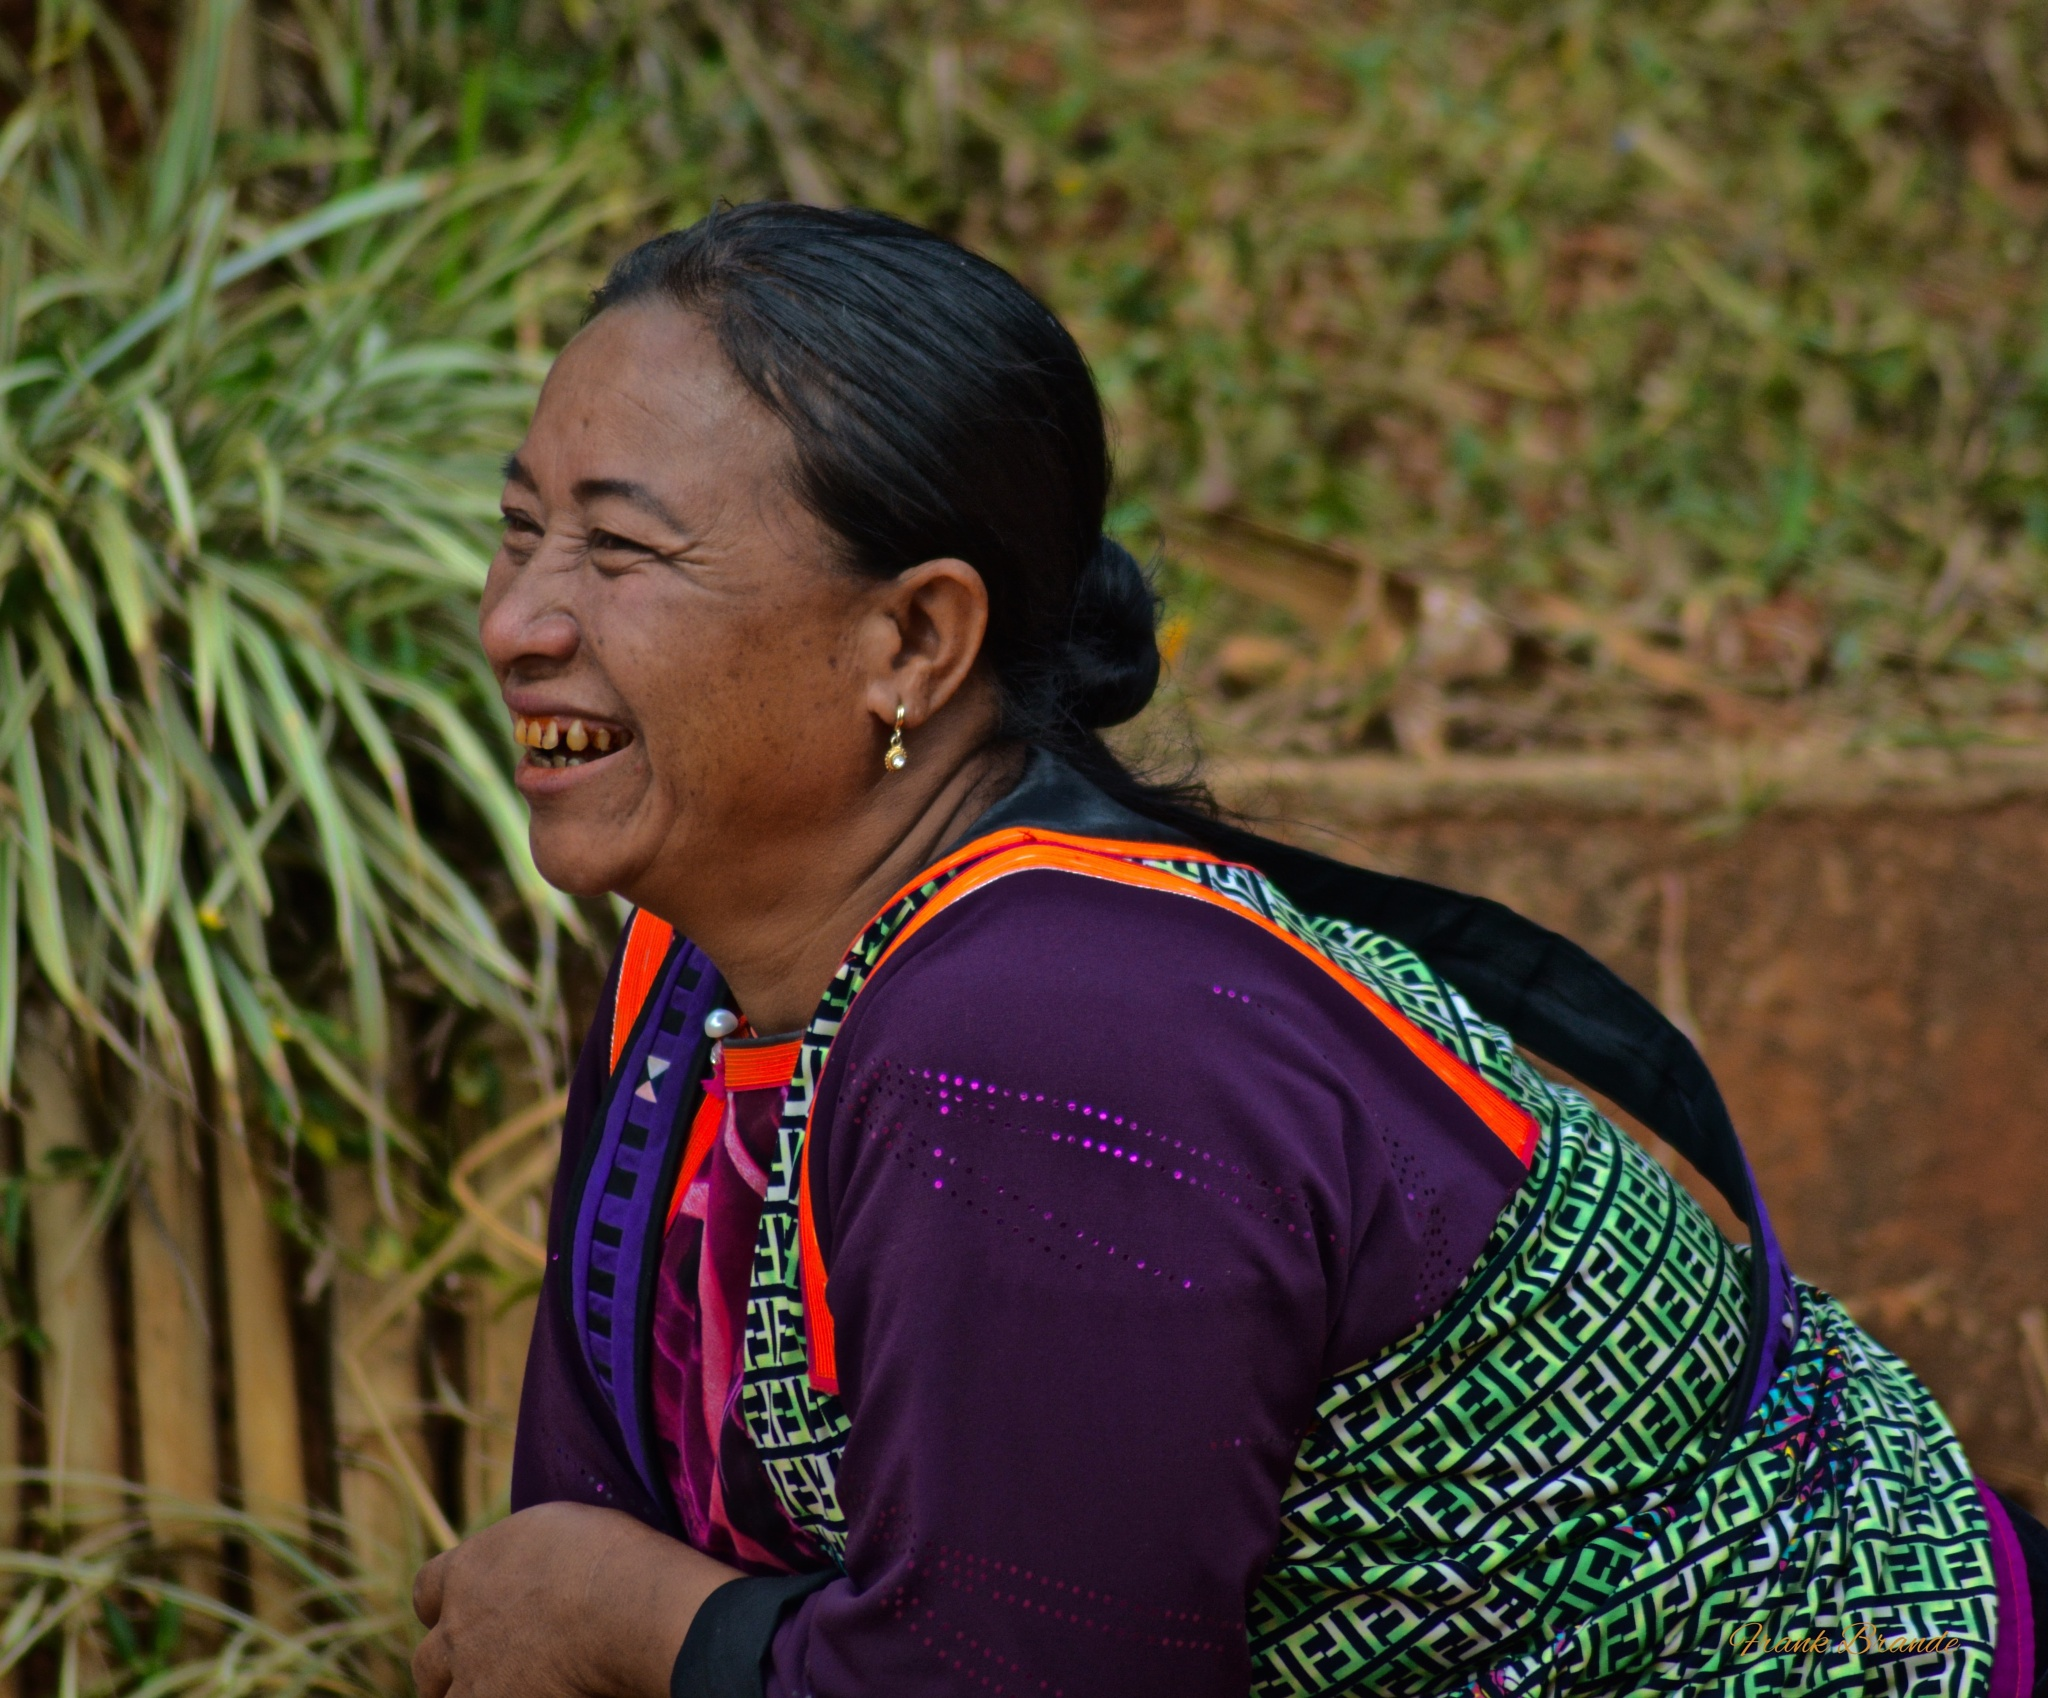 In the moment: Thai Hill Tribe woman watching her daughter play by Frank Brande